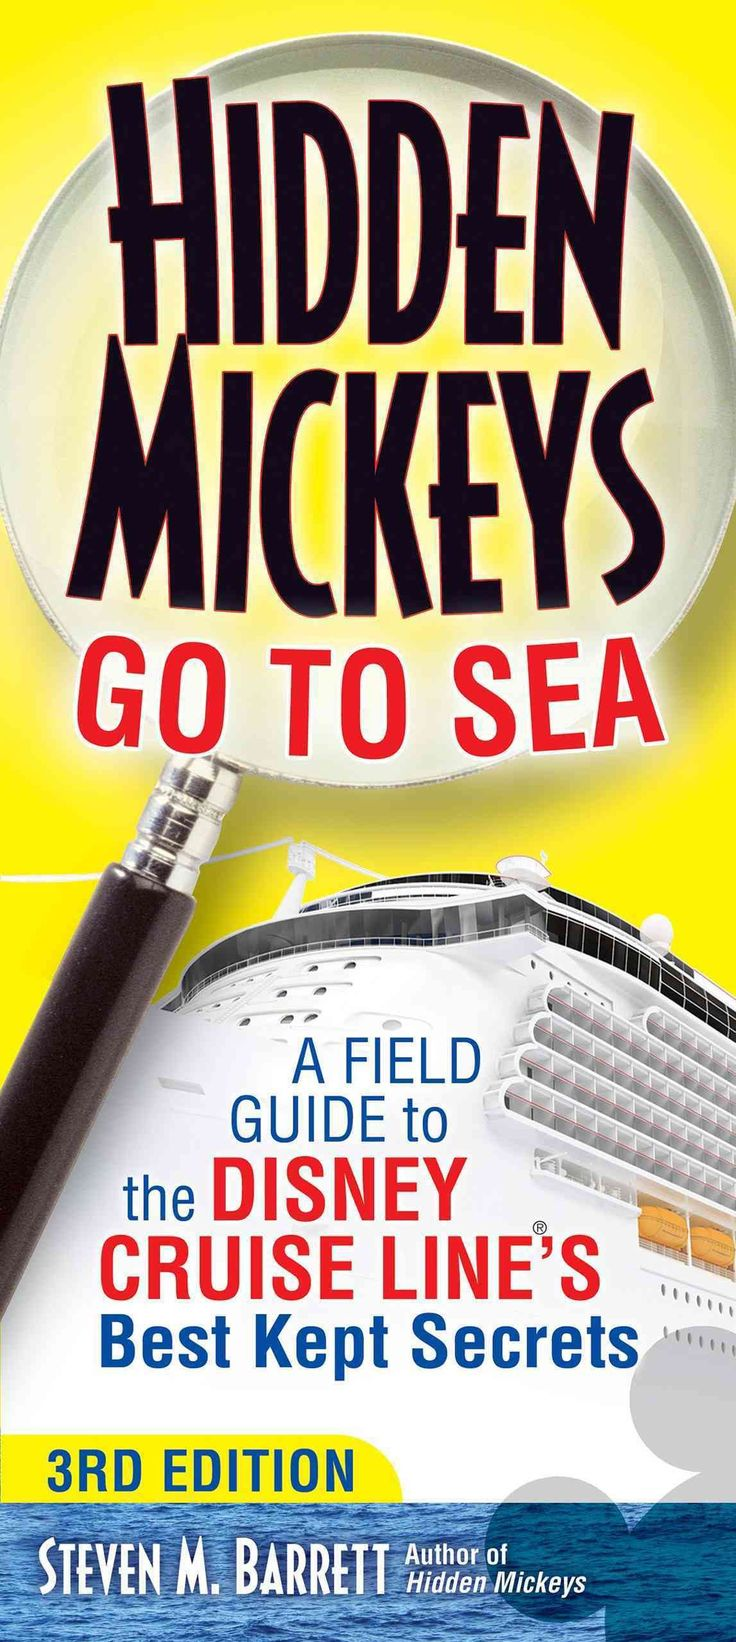 58 best disney cruise tips images on pinterest disney vacations hidden mickeys go to sea a field guide to the disney cruise lines best kept secrets edition by steven m fandeluxe Images